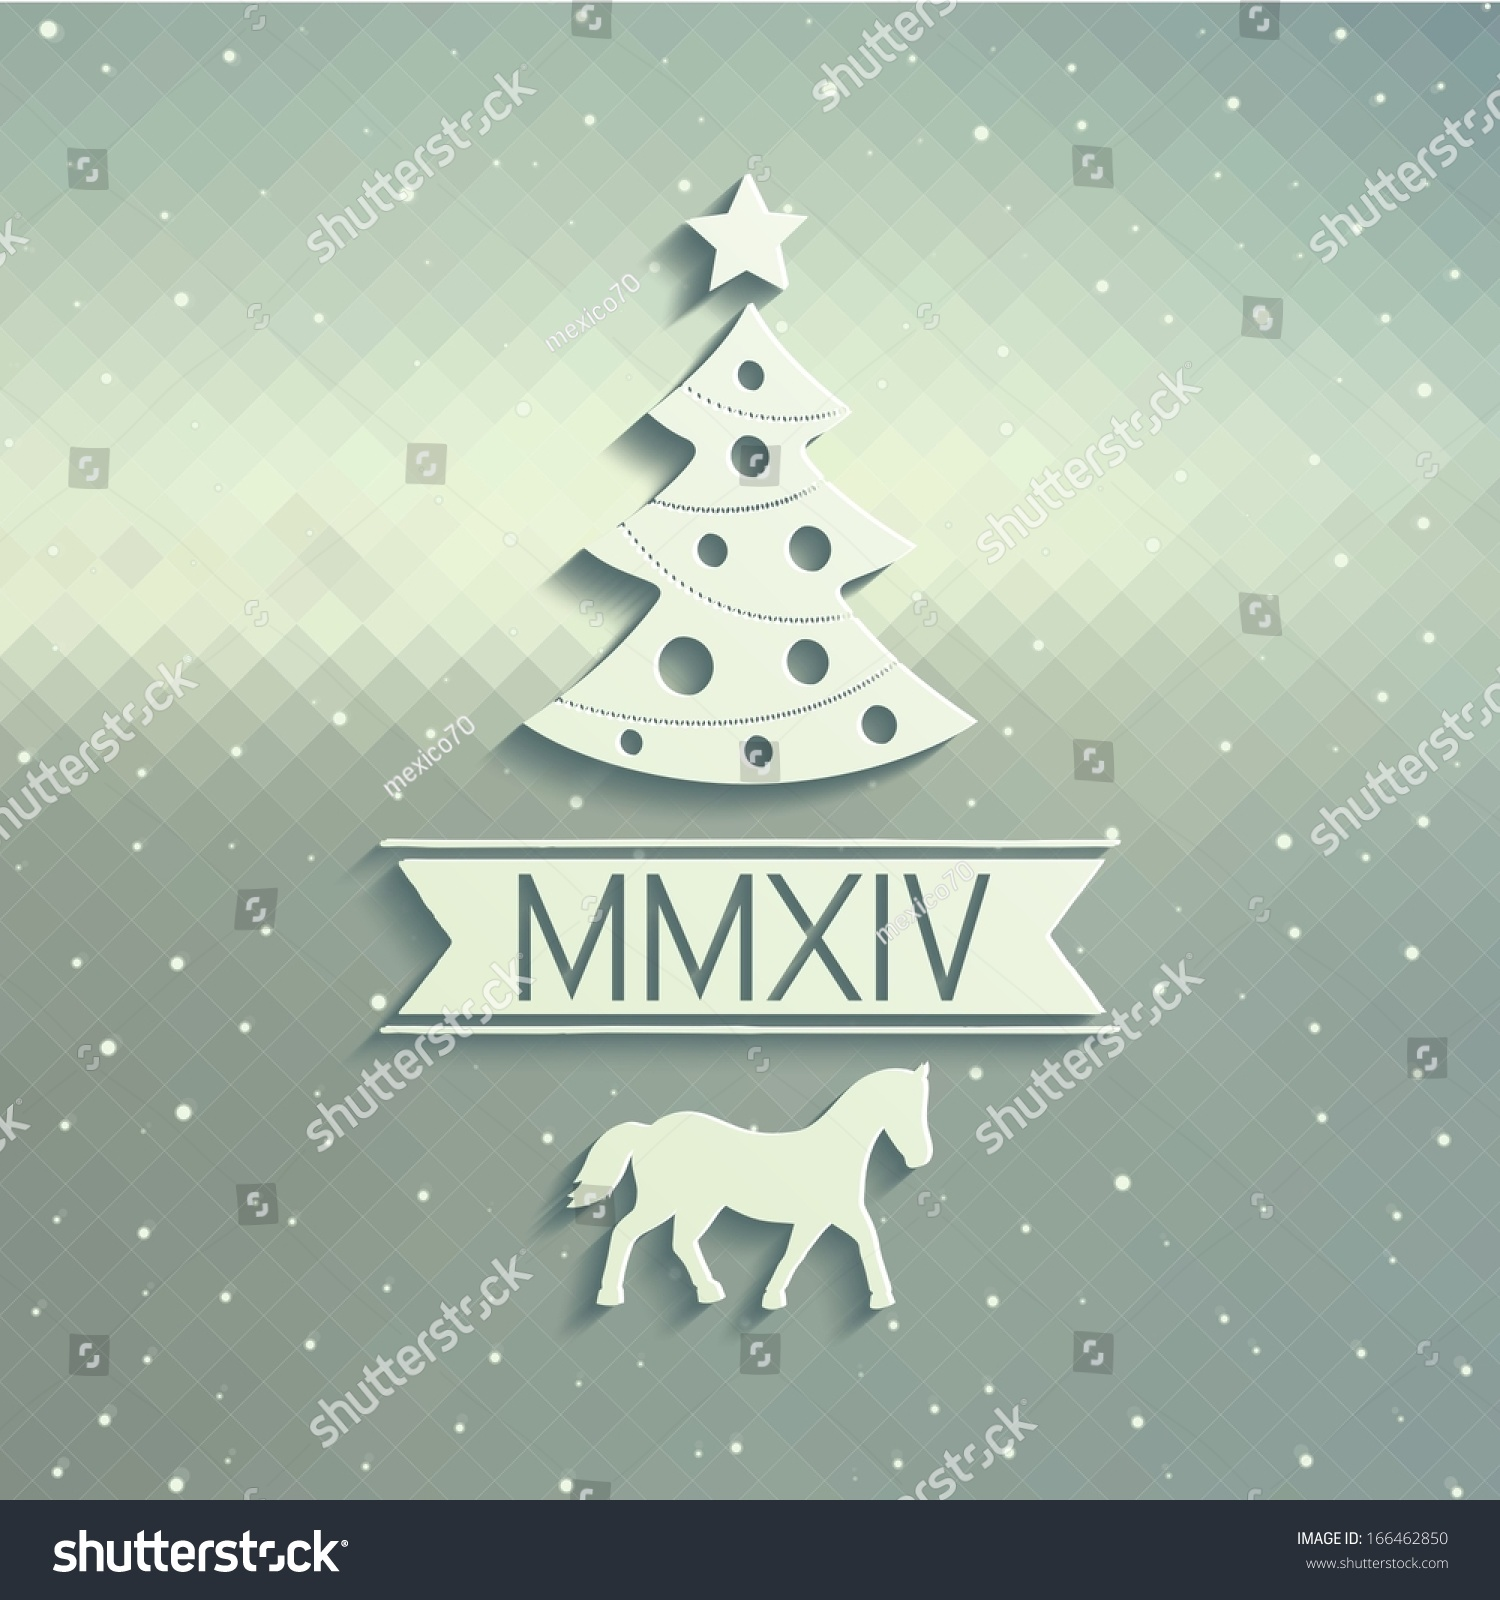 Christmas Card Design Symbols Coming Year Stock-Vektorgrafik ...